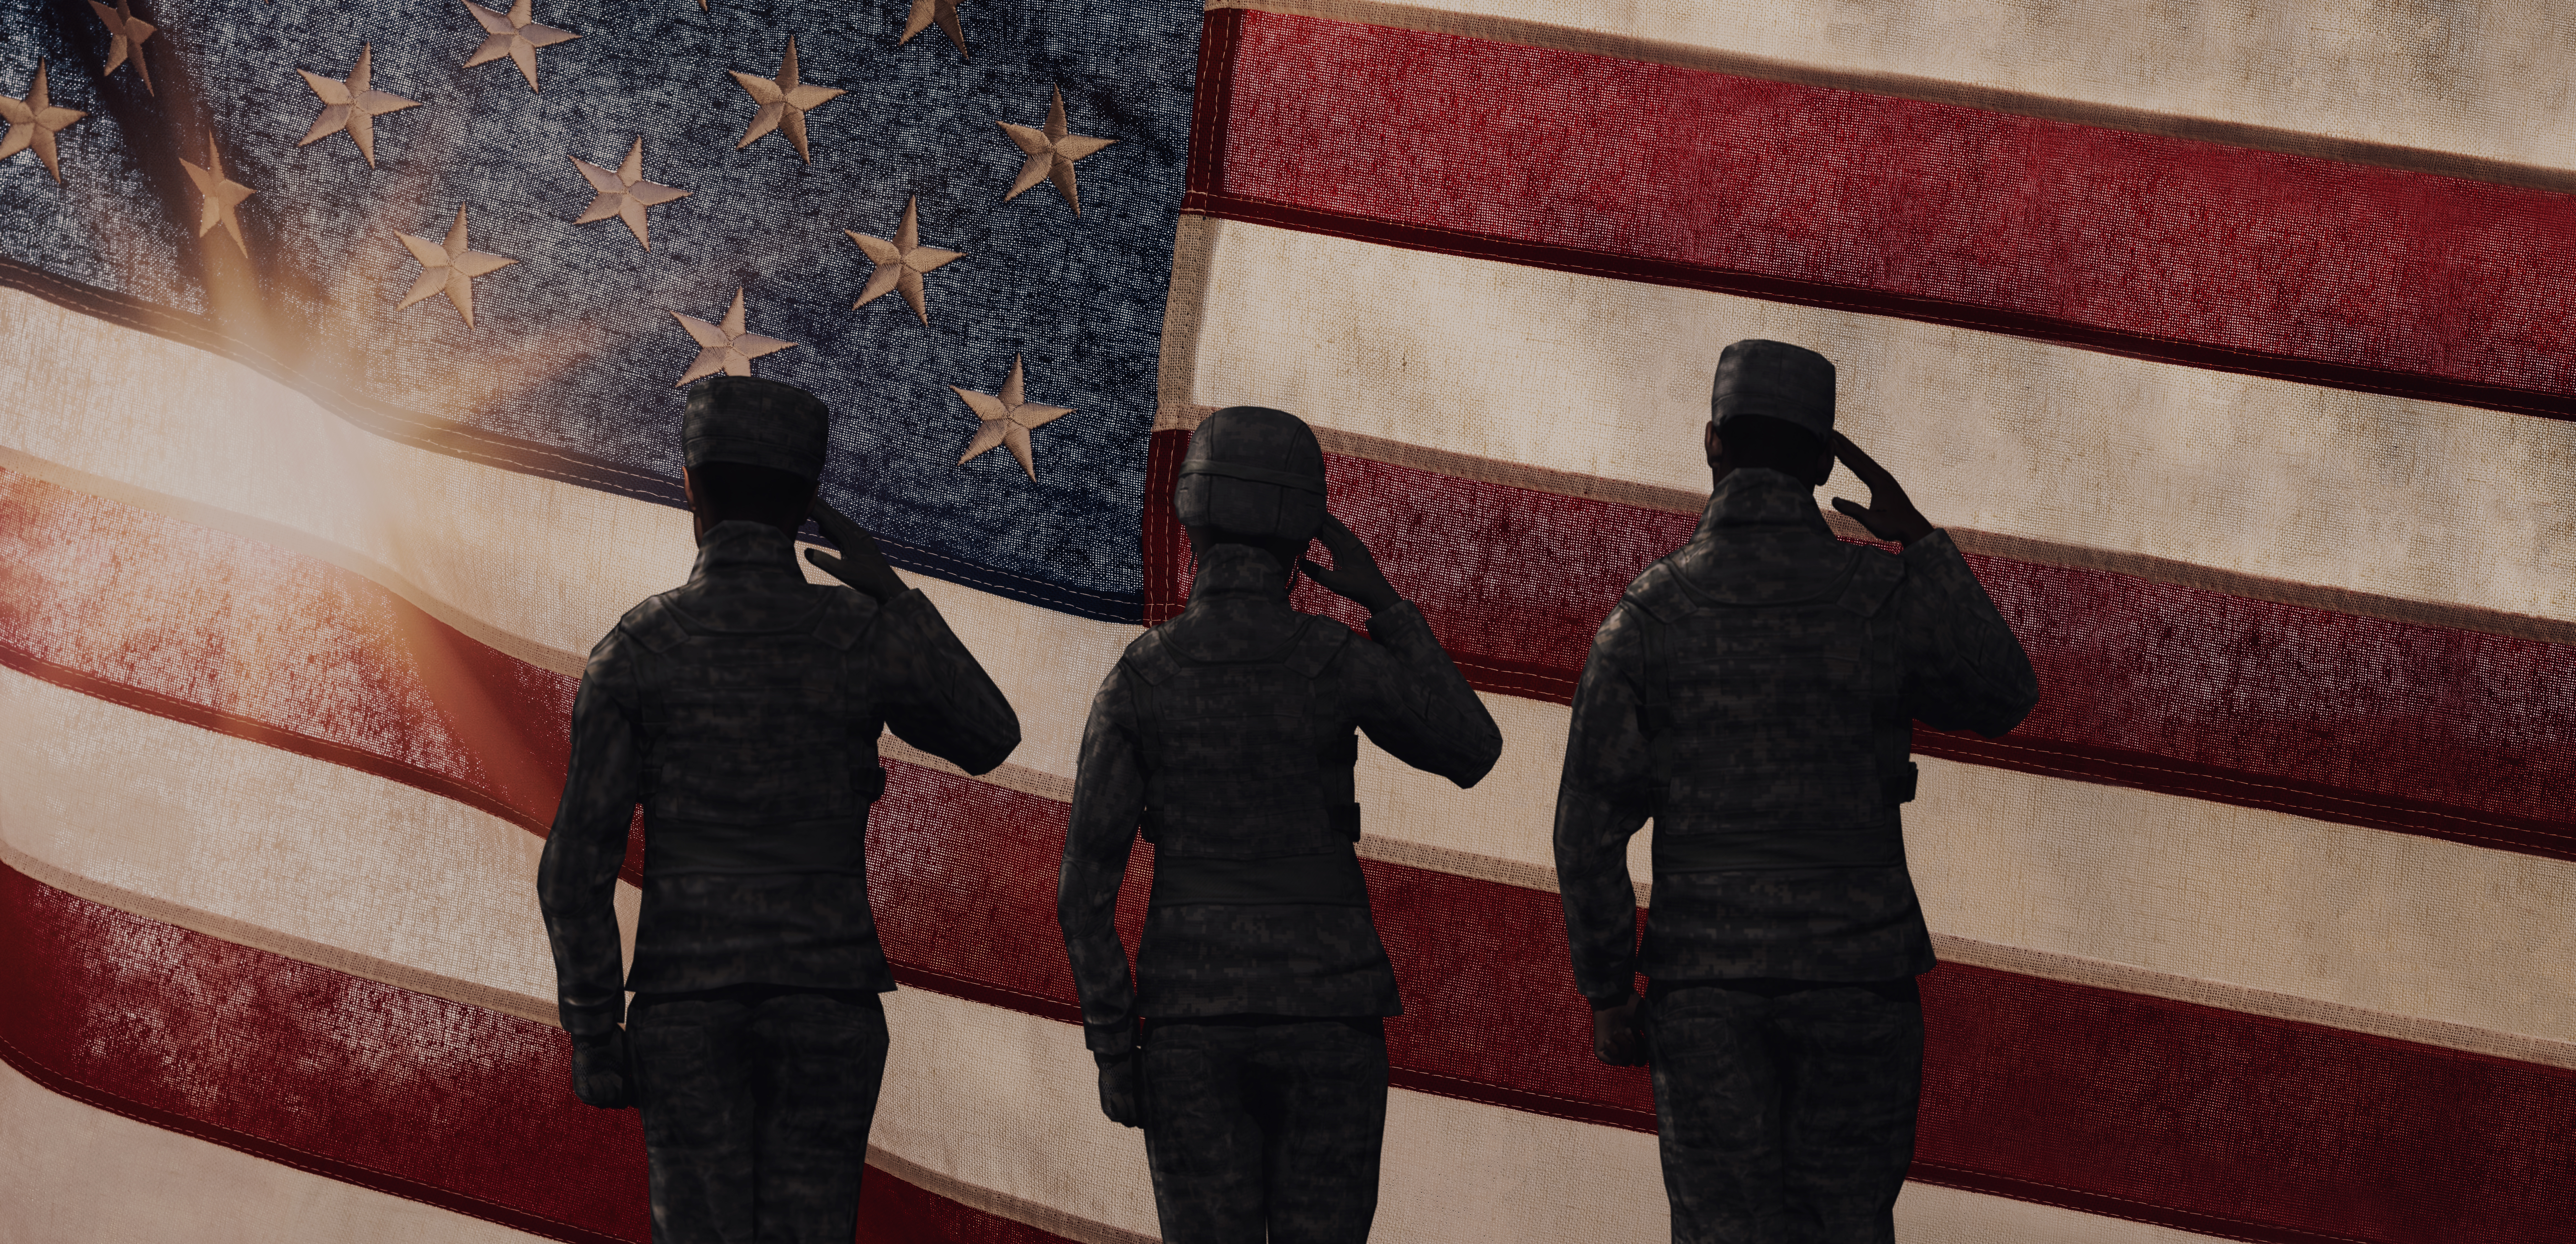 American Soldiers and Veterans in front a American flag. Veteran support services in Texas.